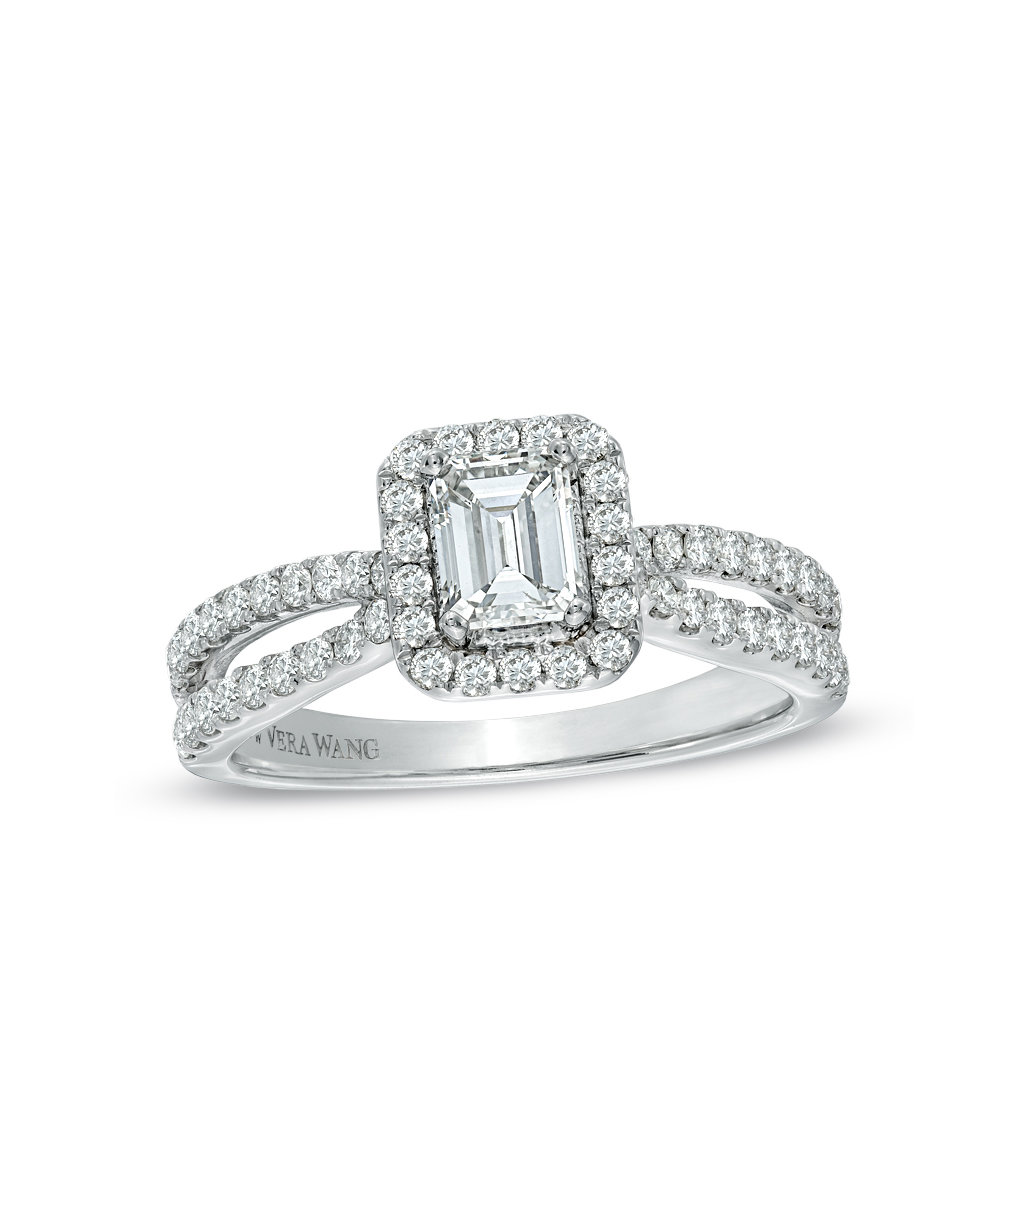 vera wang collection 1 t c w emerald cut